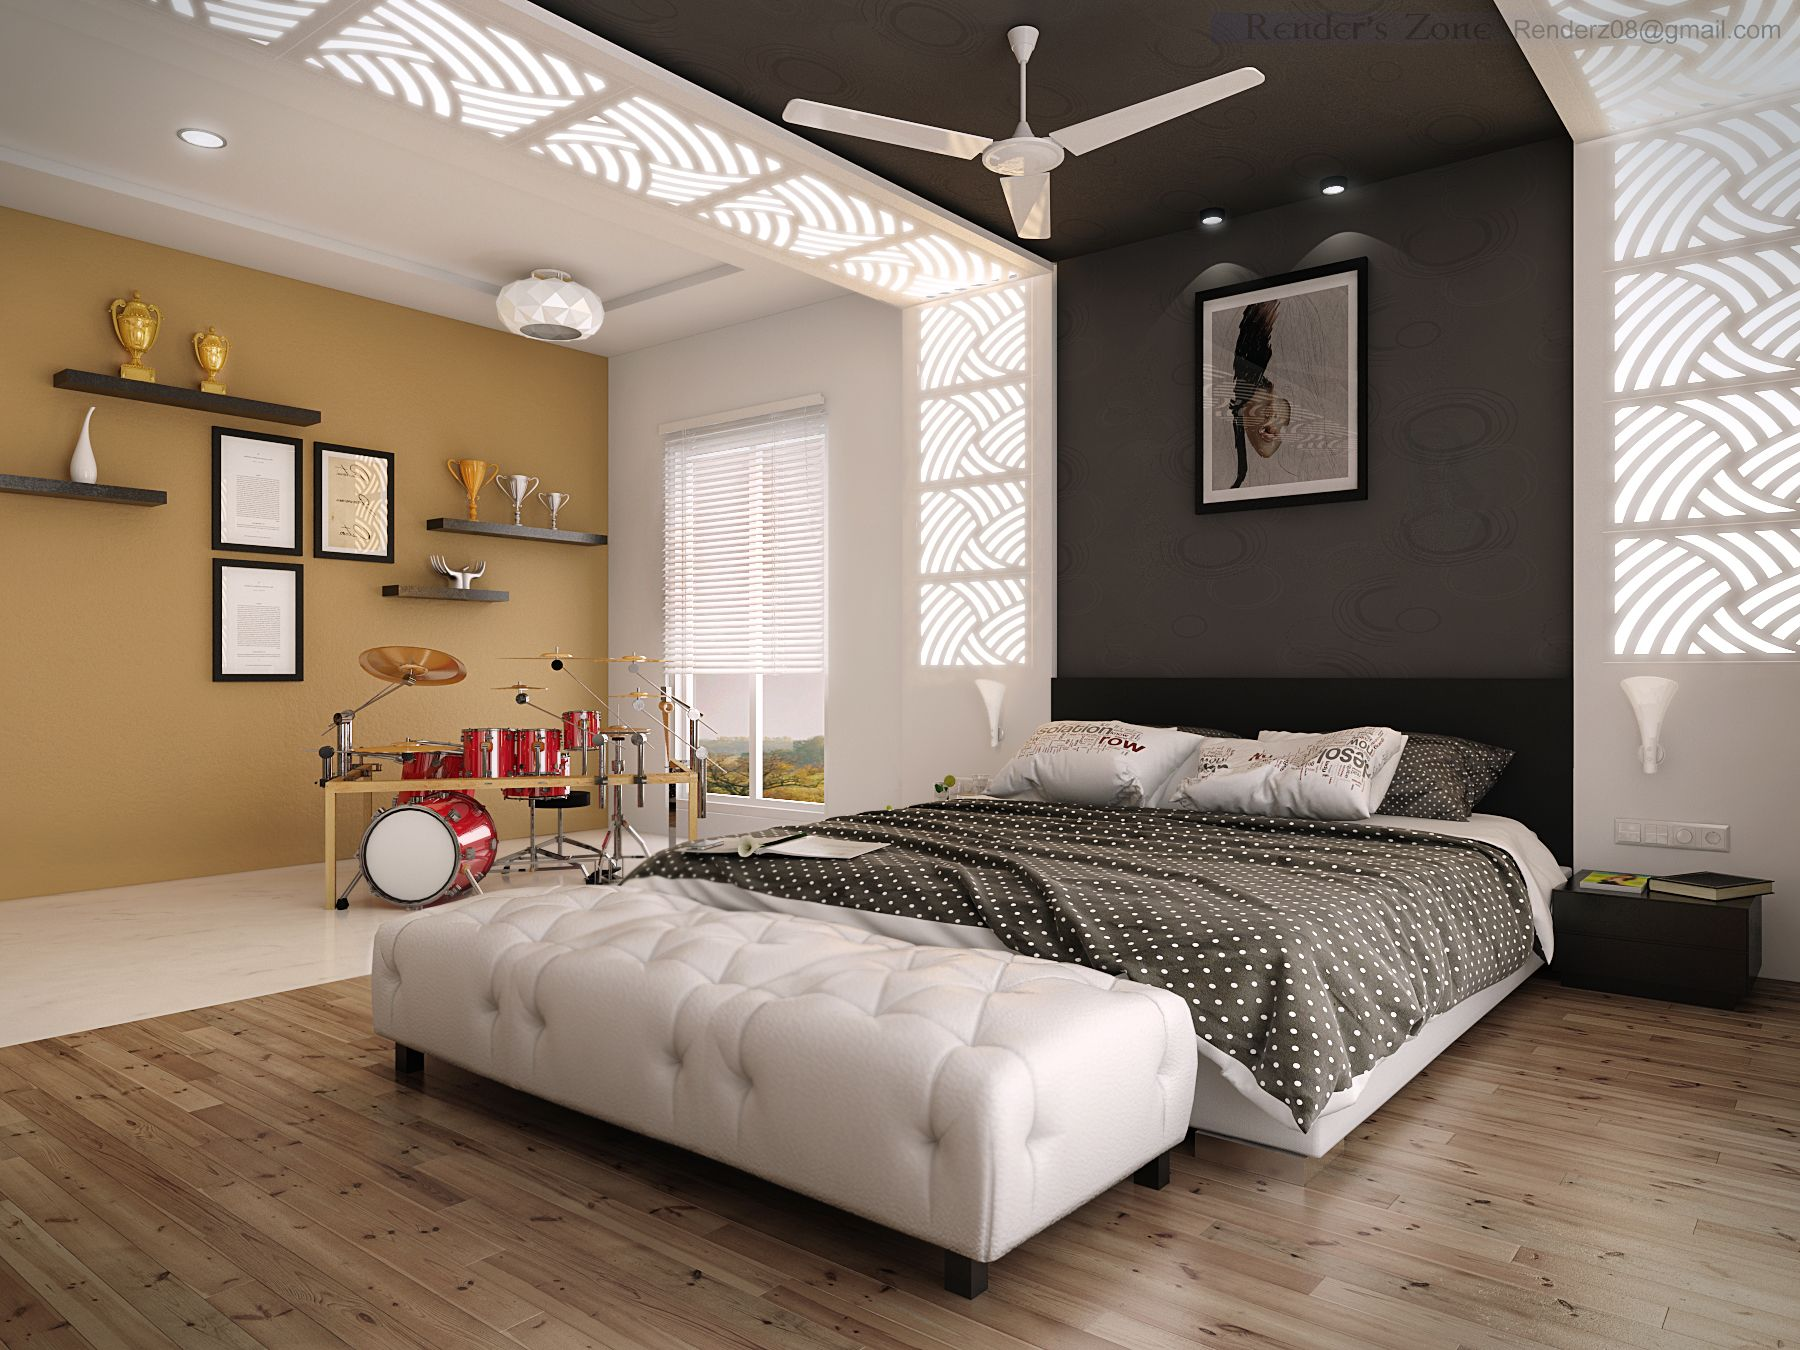 Best Breathtaking Bedroom Designs To Inspire You Dormitorios 400 x 300